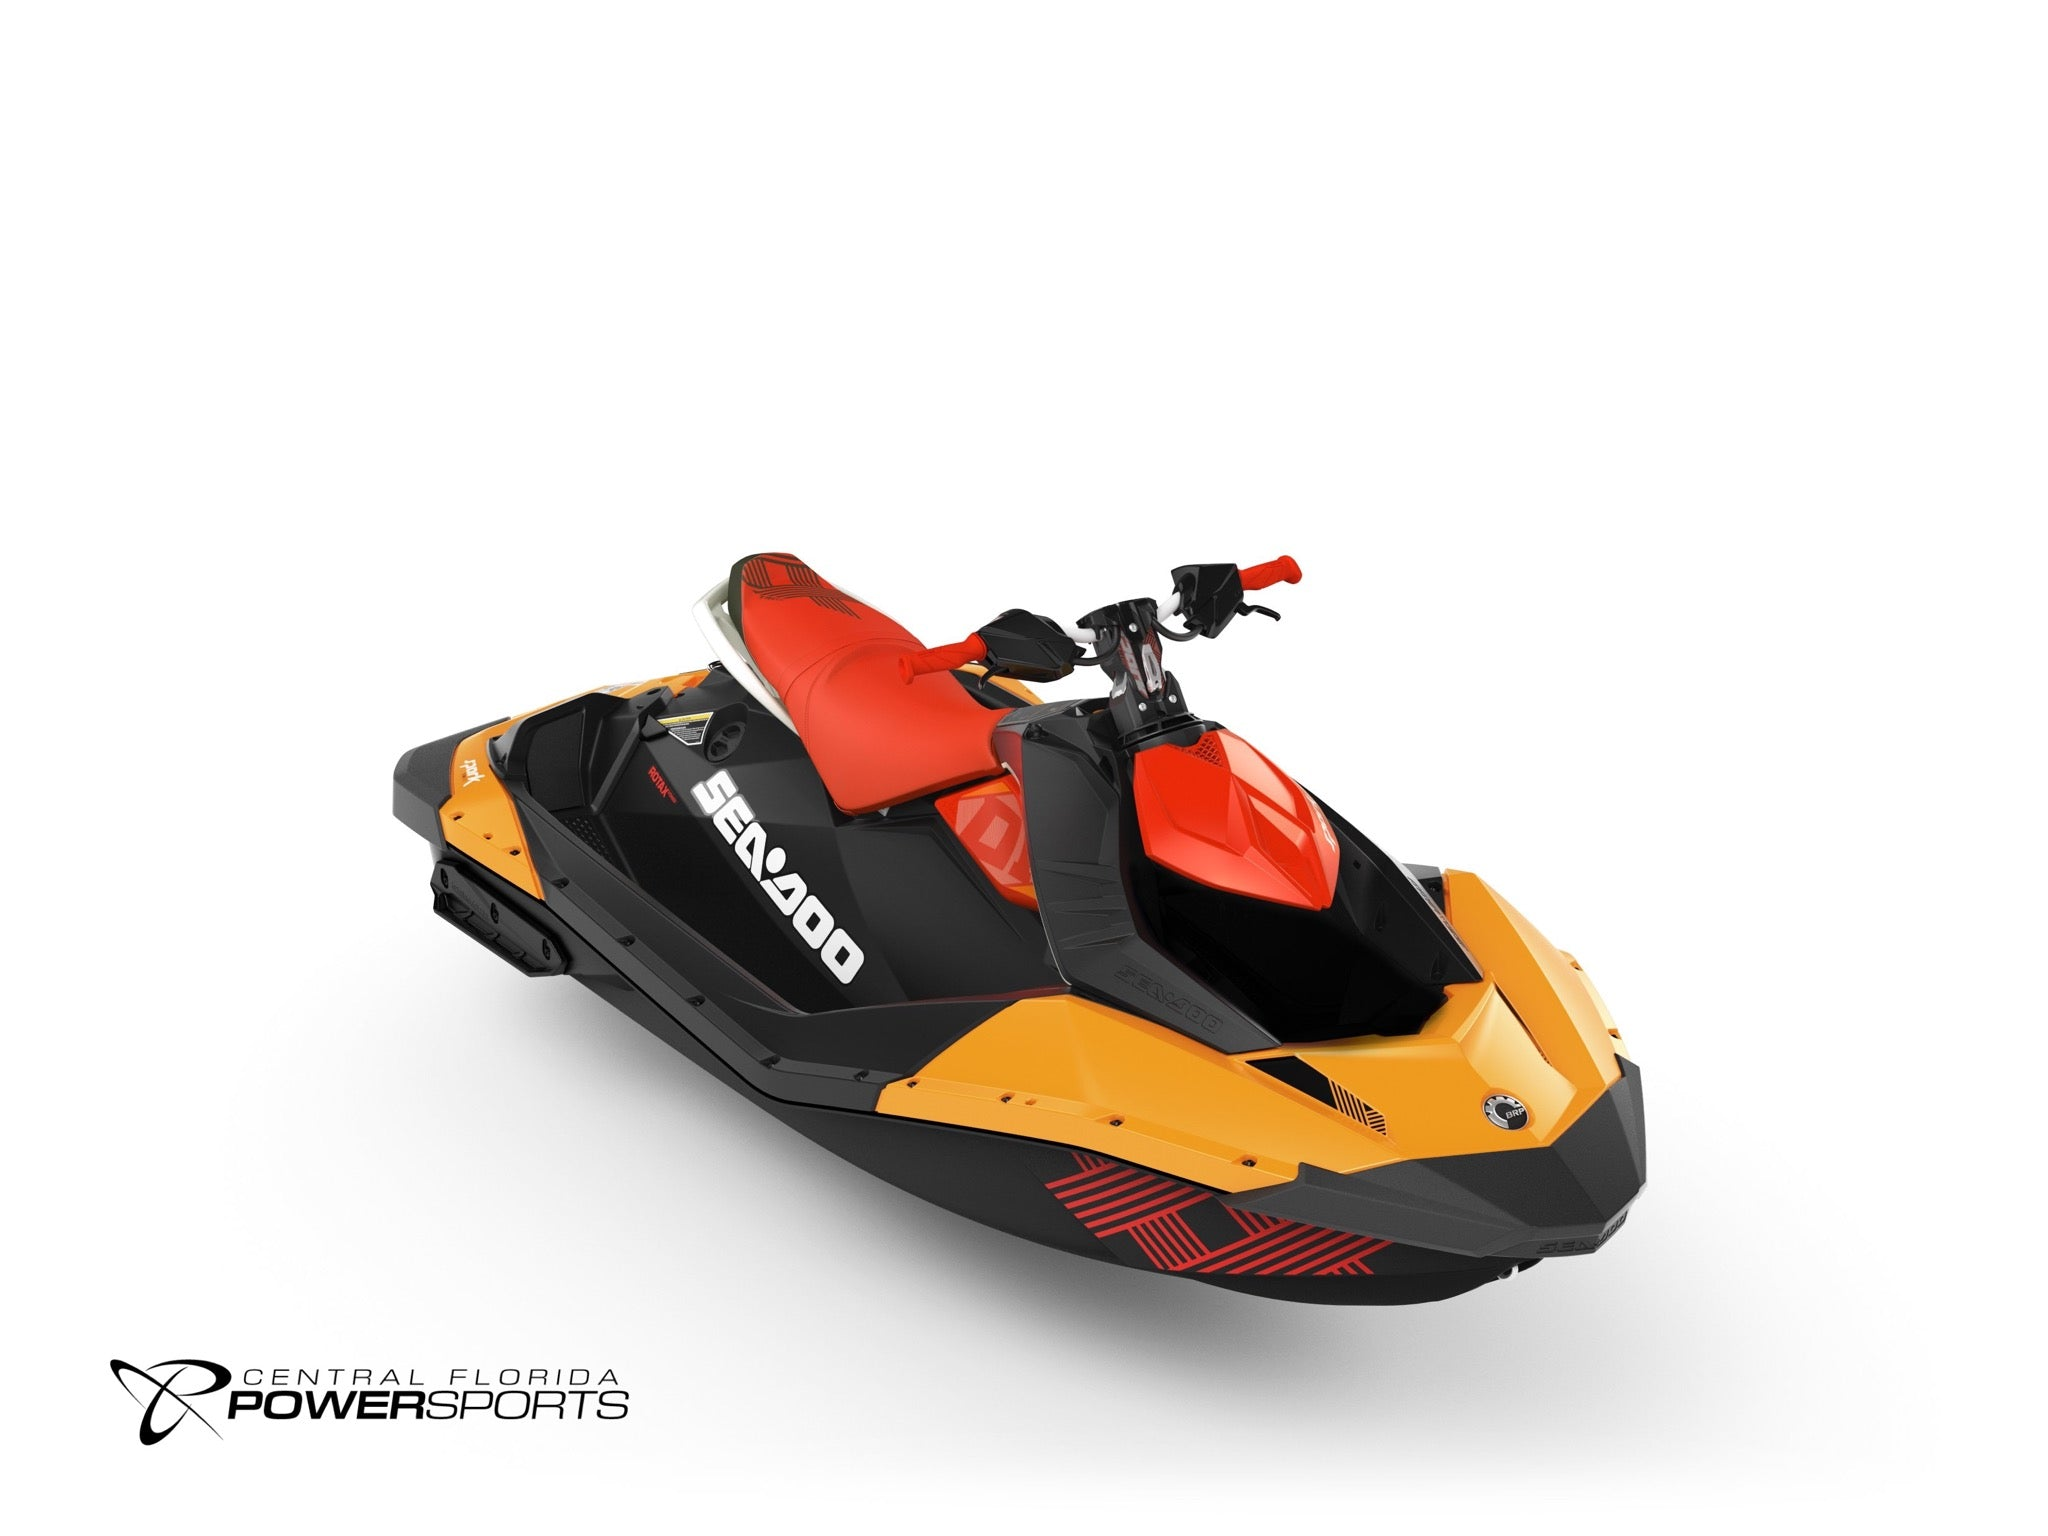 Seadoo Prices >> Lowest Prices on 2018 Sea-Doo Spark TRIXX PWC For Sale - Kissimmee, FL - Central Florida PowerSports